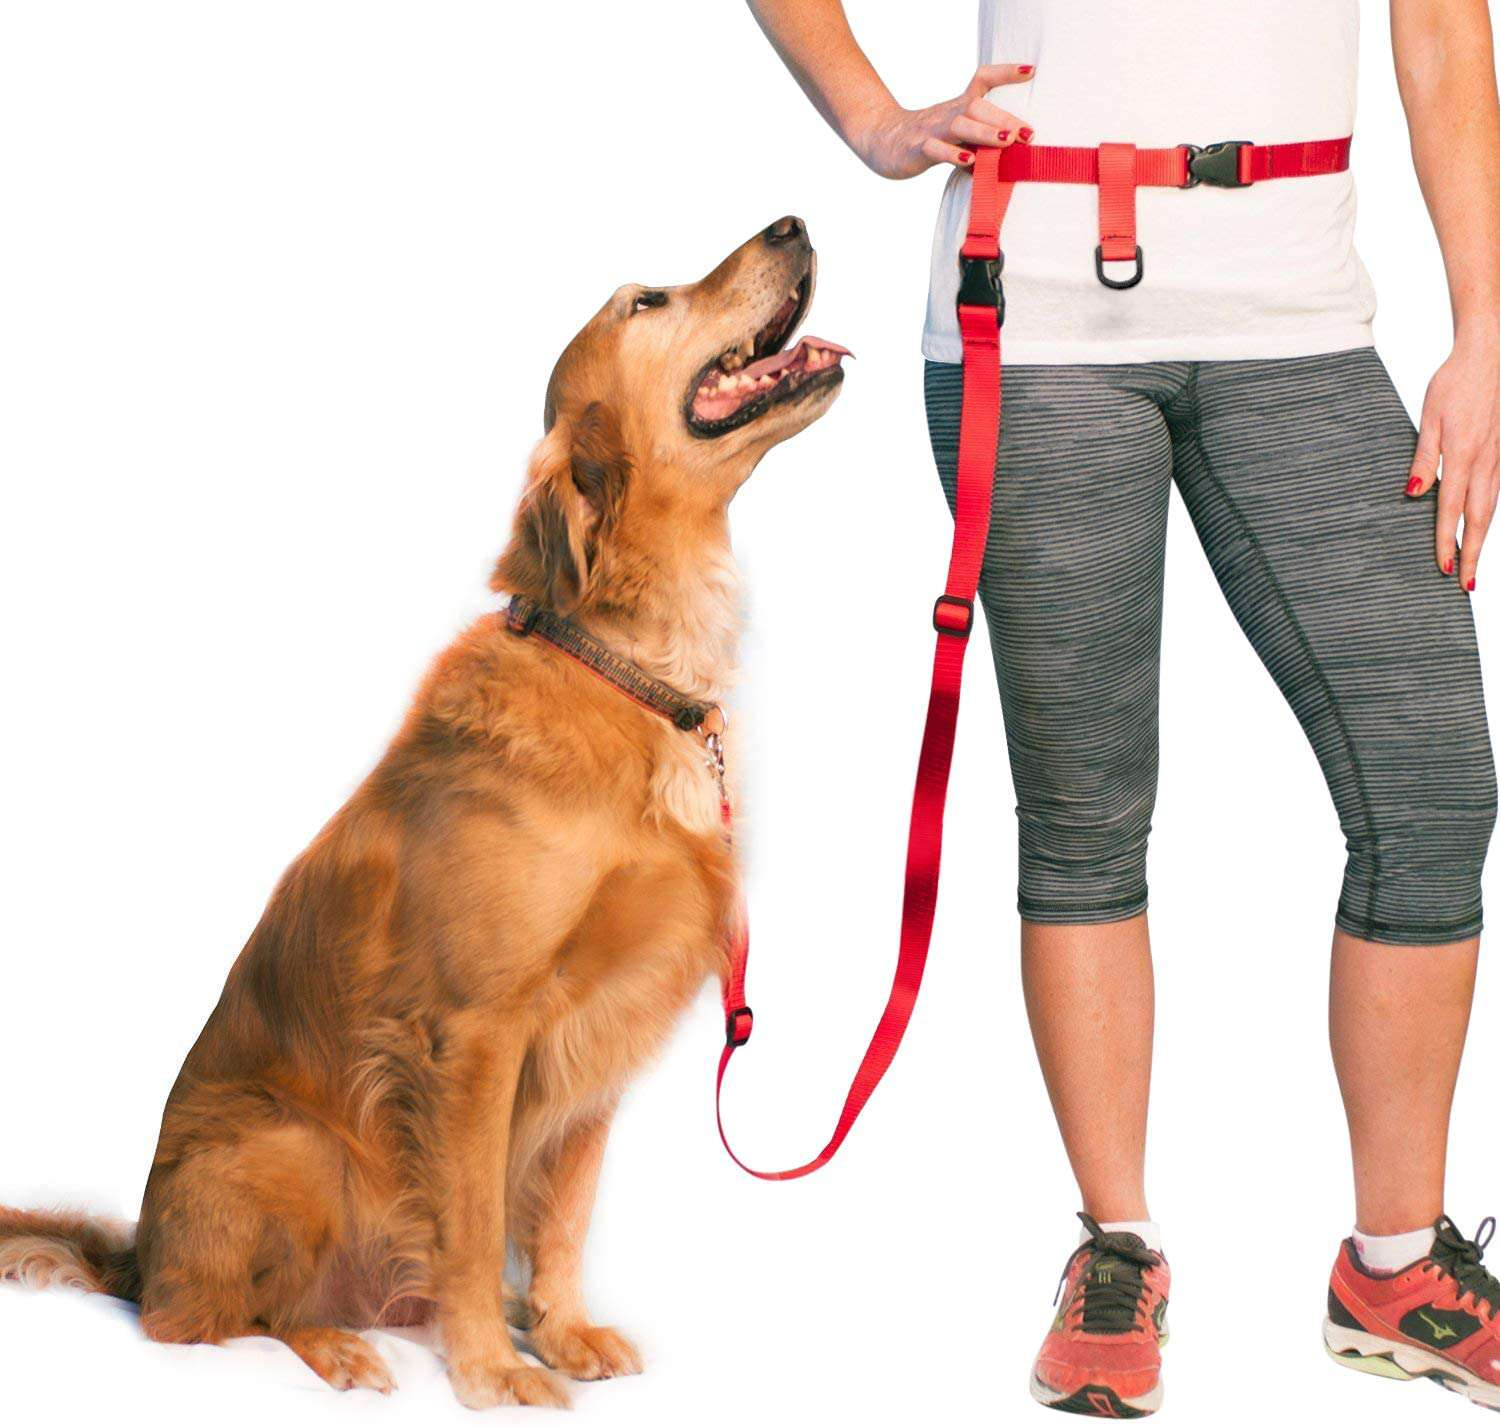 The Buddy System Adjustable Hands-Free Dog Leash